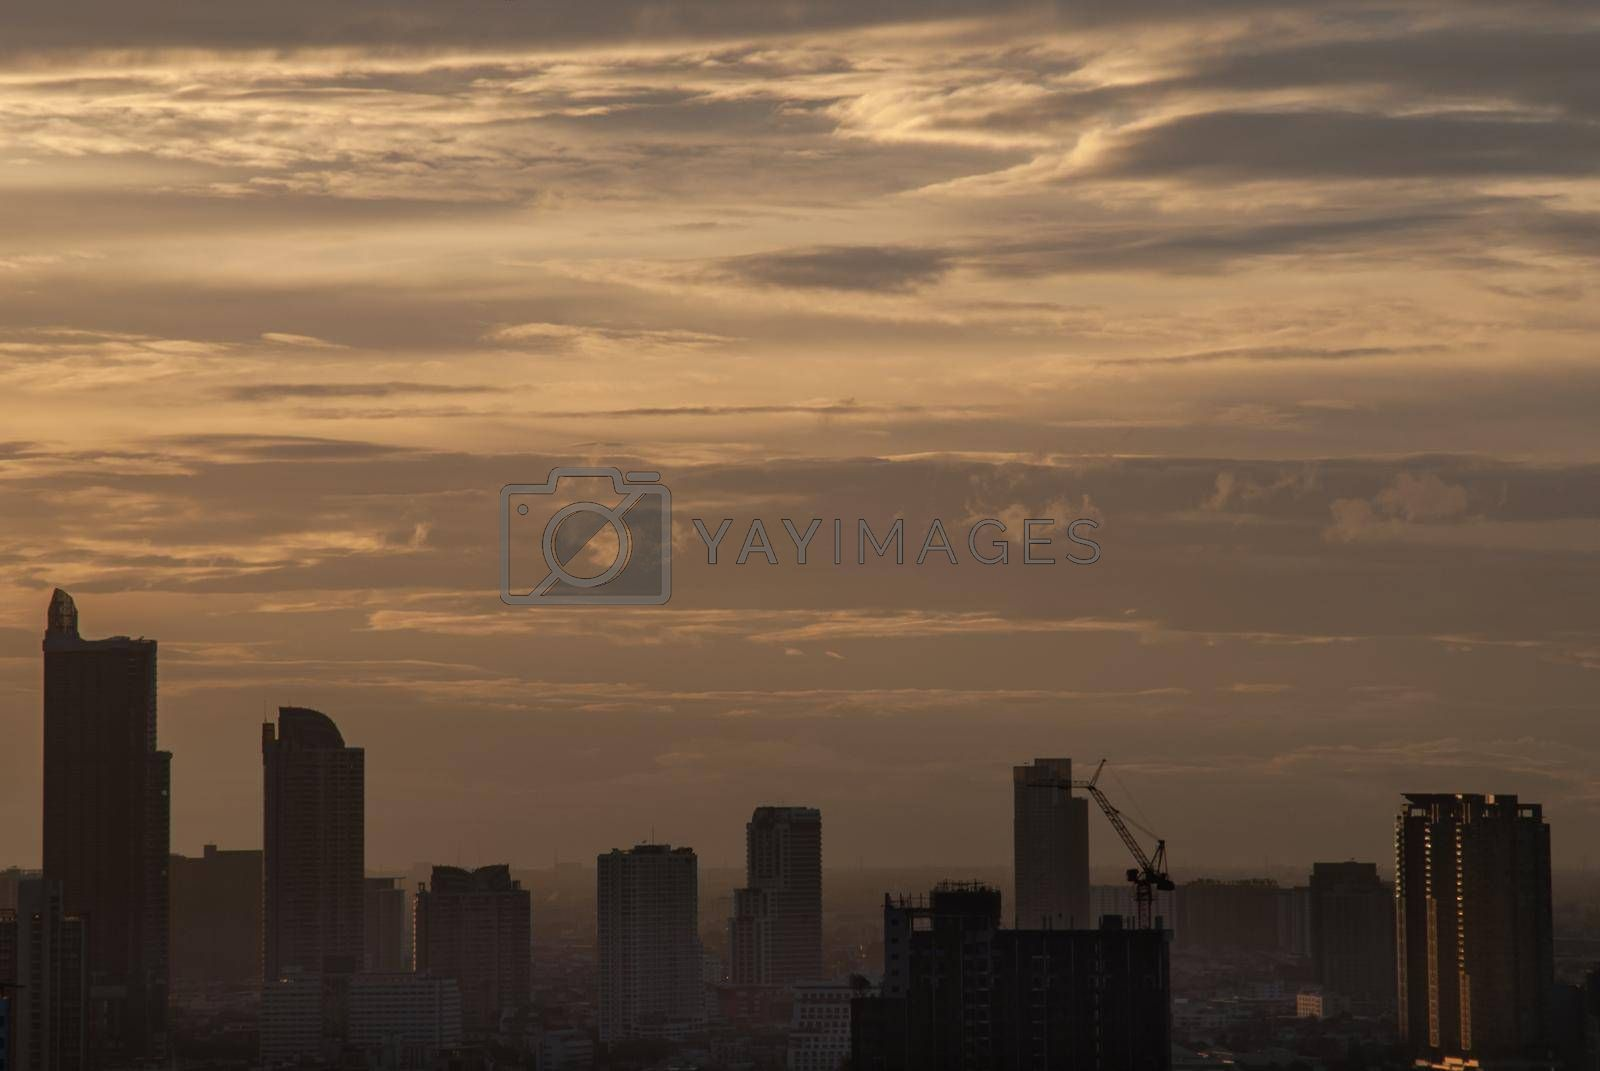 Sunset and city skyline filled with skyscrapers in Bangkok's business district. central business district concepts.